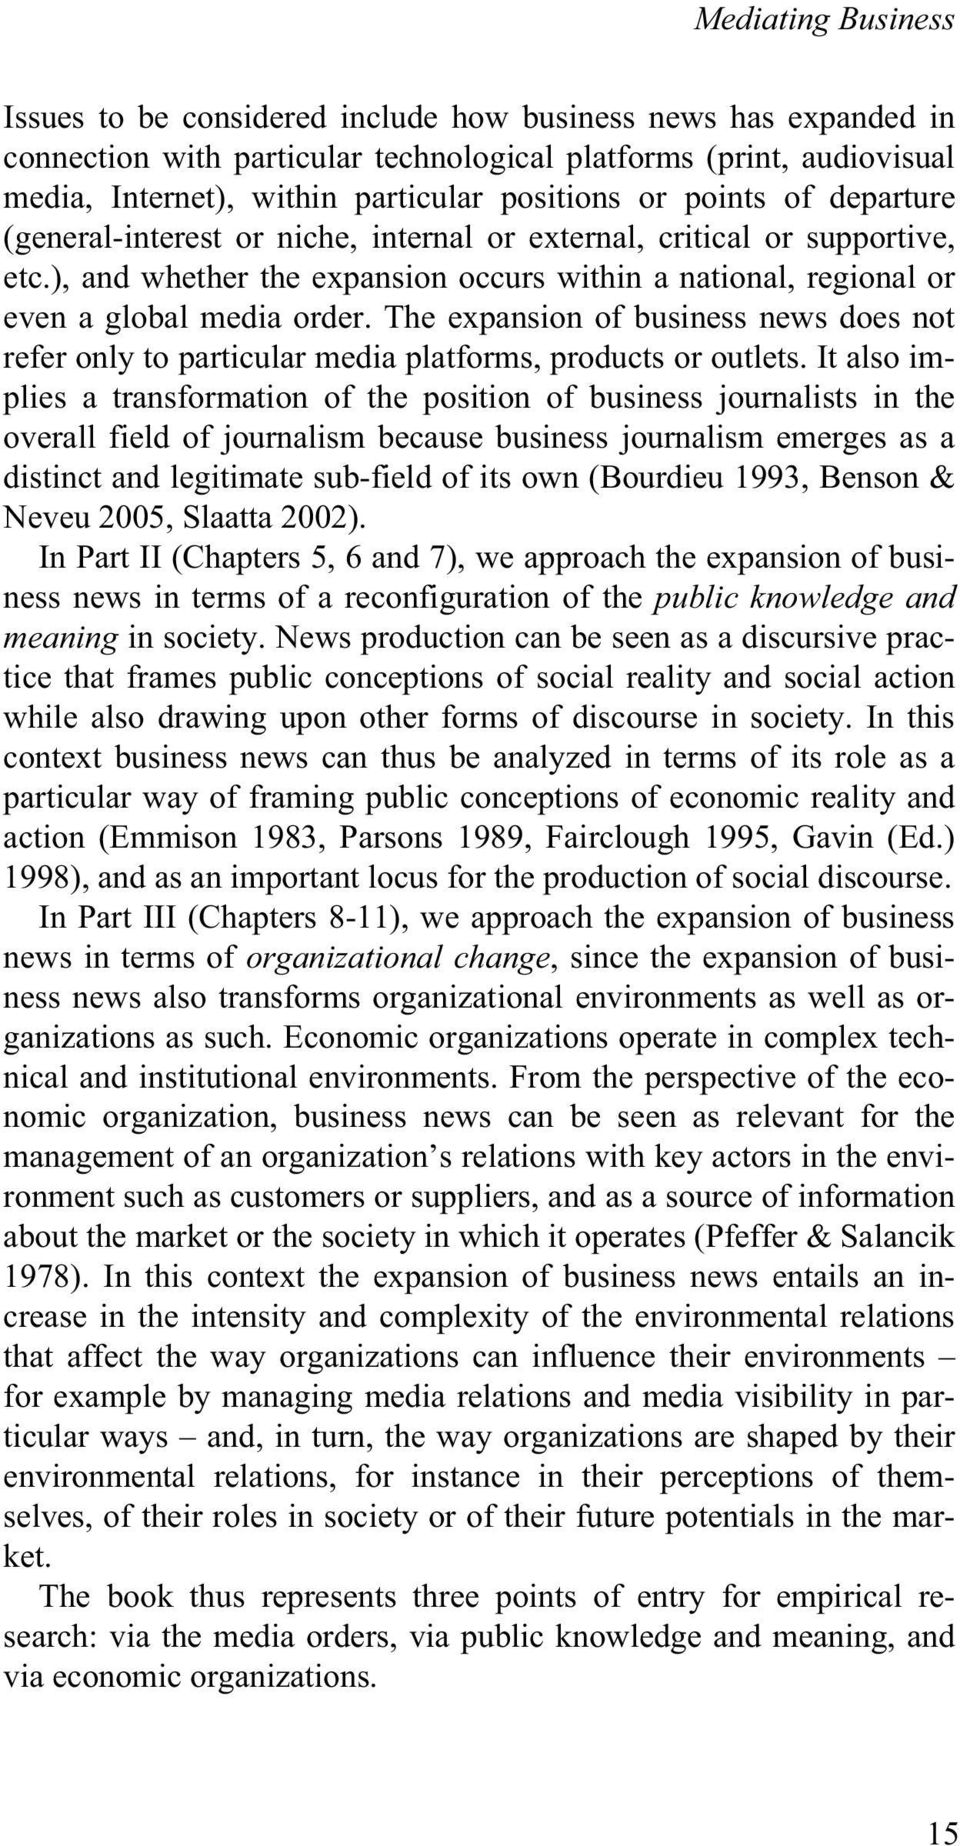 ), and whether the expansion occurs within a national, regional or even a global media order. The expansion of business news does not refer only to particular media platforms, products or outlets.